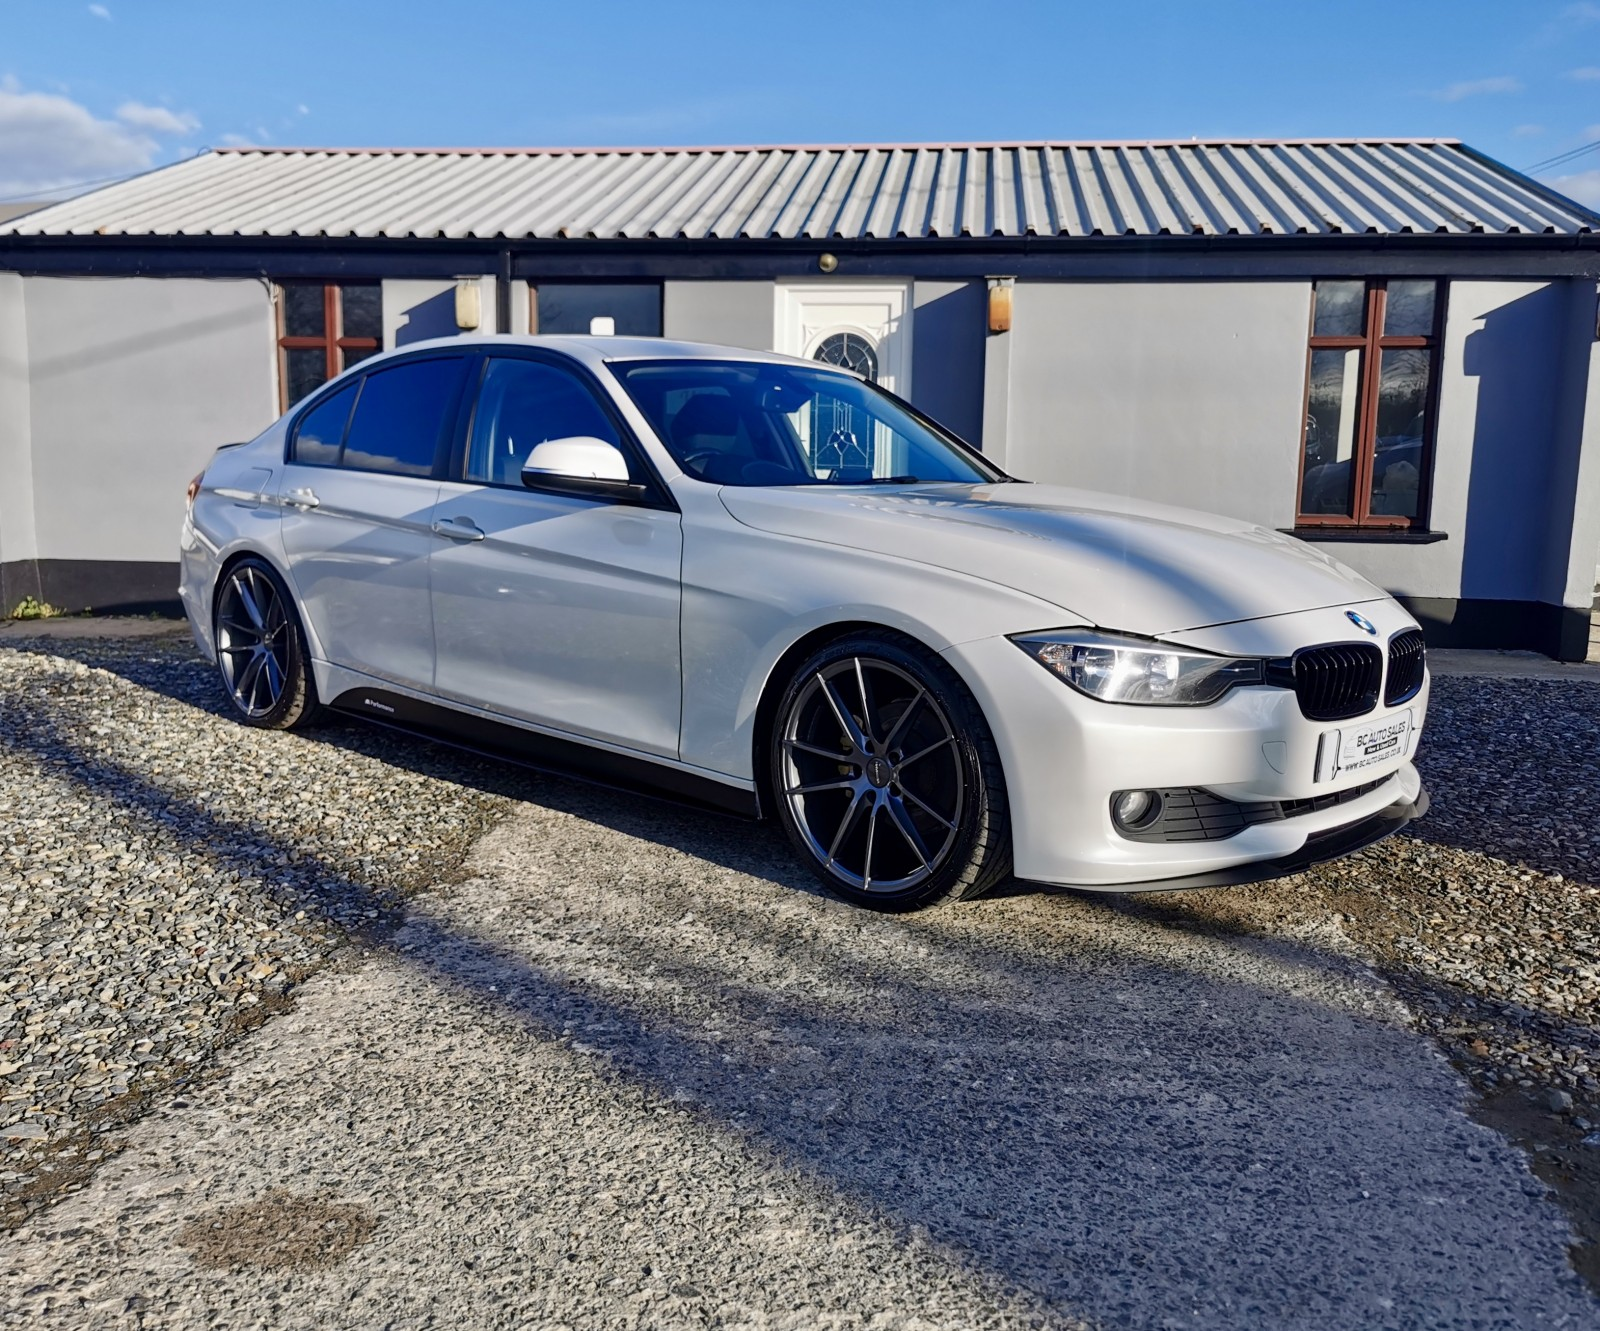 2012 BMW 3 Series 318D SE Diesel Manual – BC Autosales 17A Airfield Road, Eglinton, Londonderry BT47 3PZ, UK